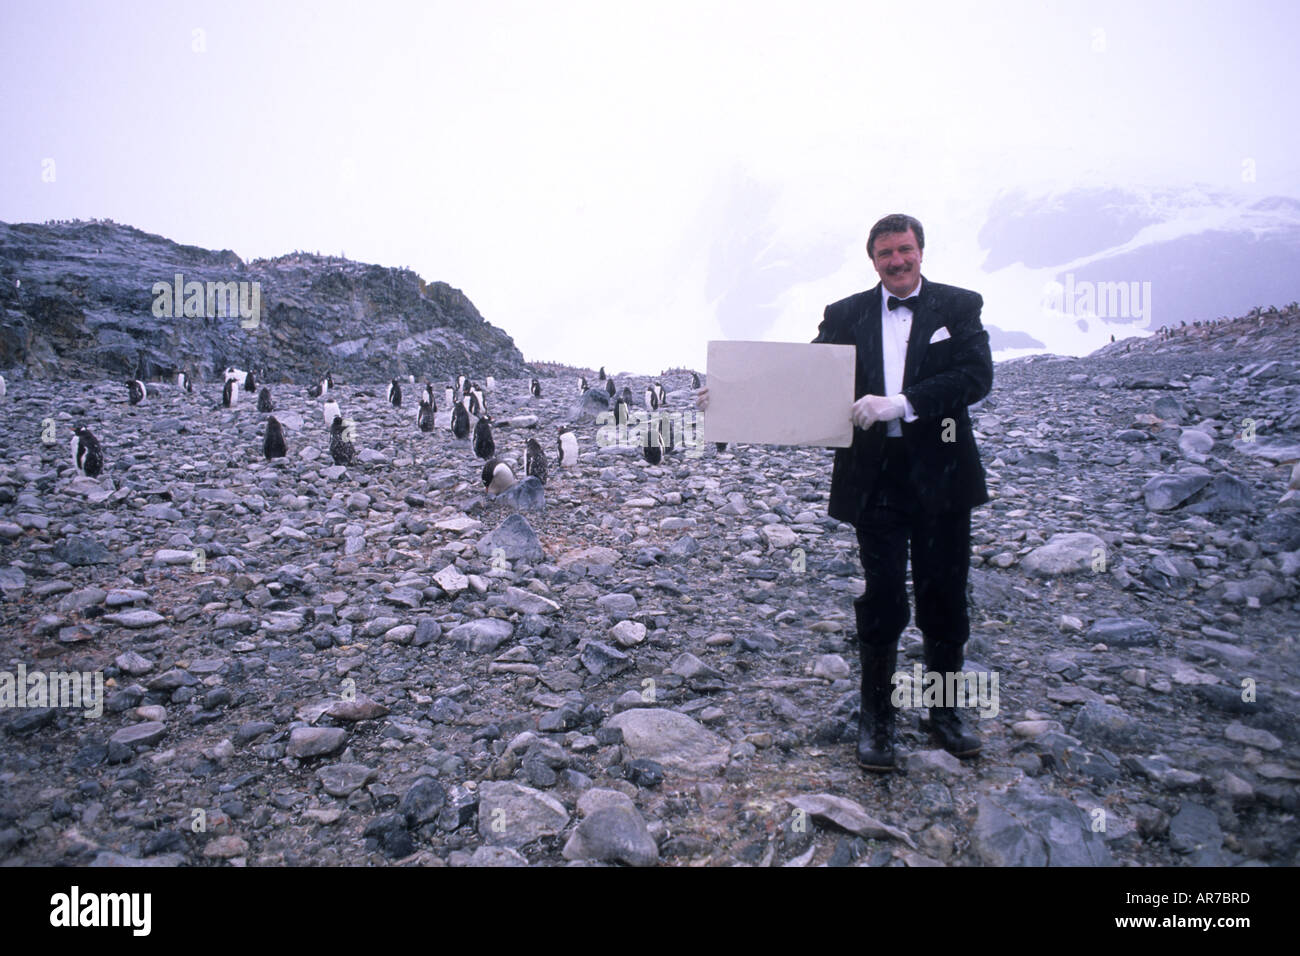 Tourist in tux having fun sign among Gentoo Penguins in Antarctica Peninsula wildlife birds sign can say anything for advertisin - Stock Image